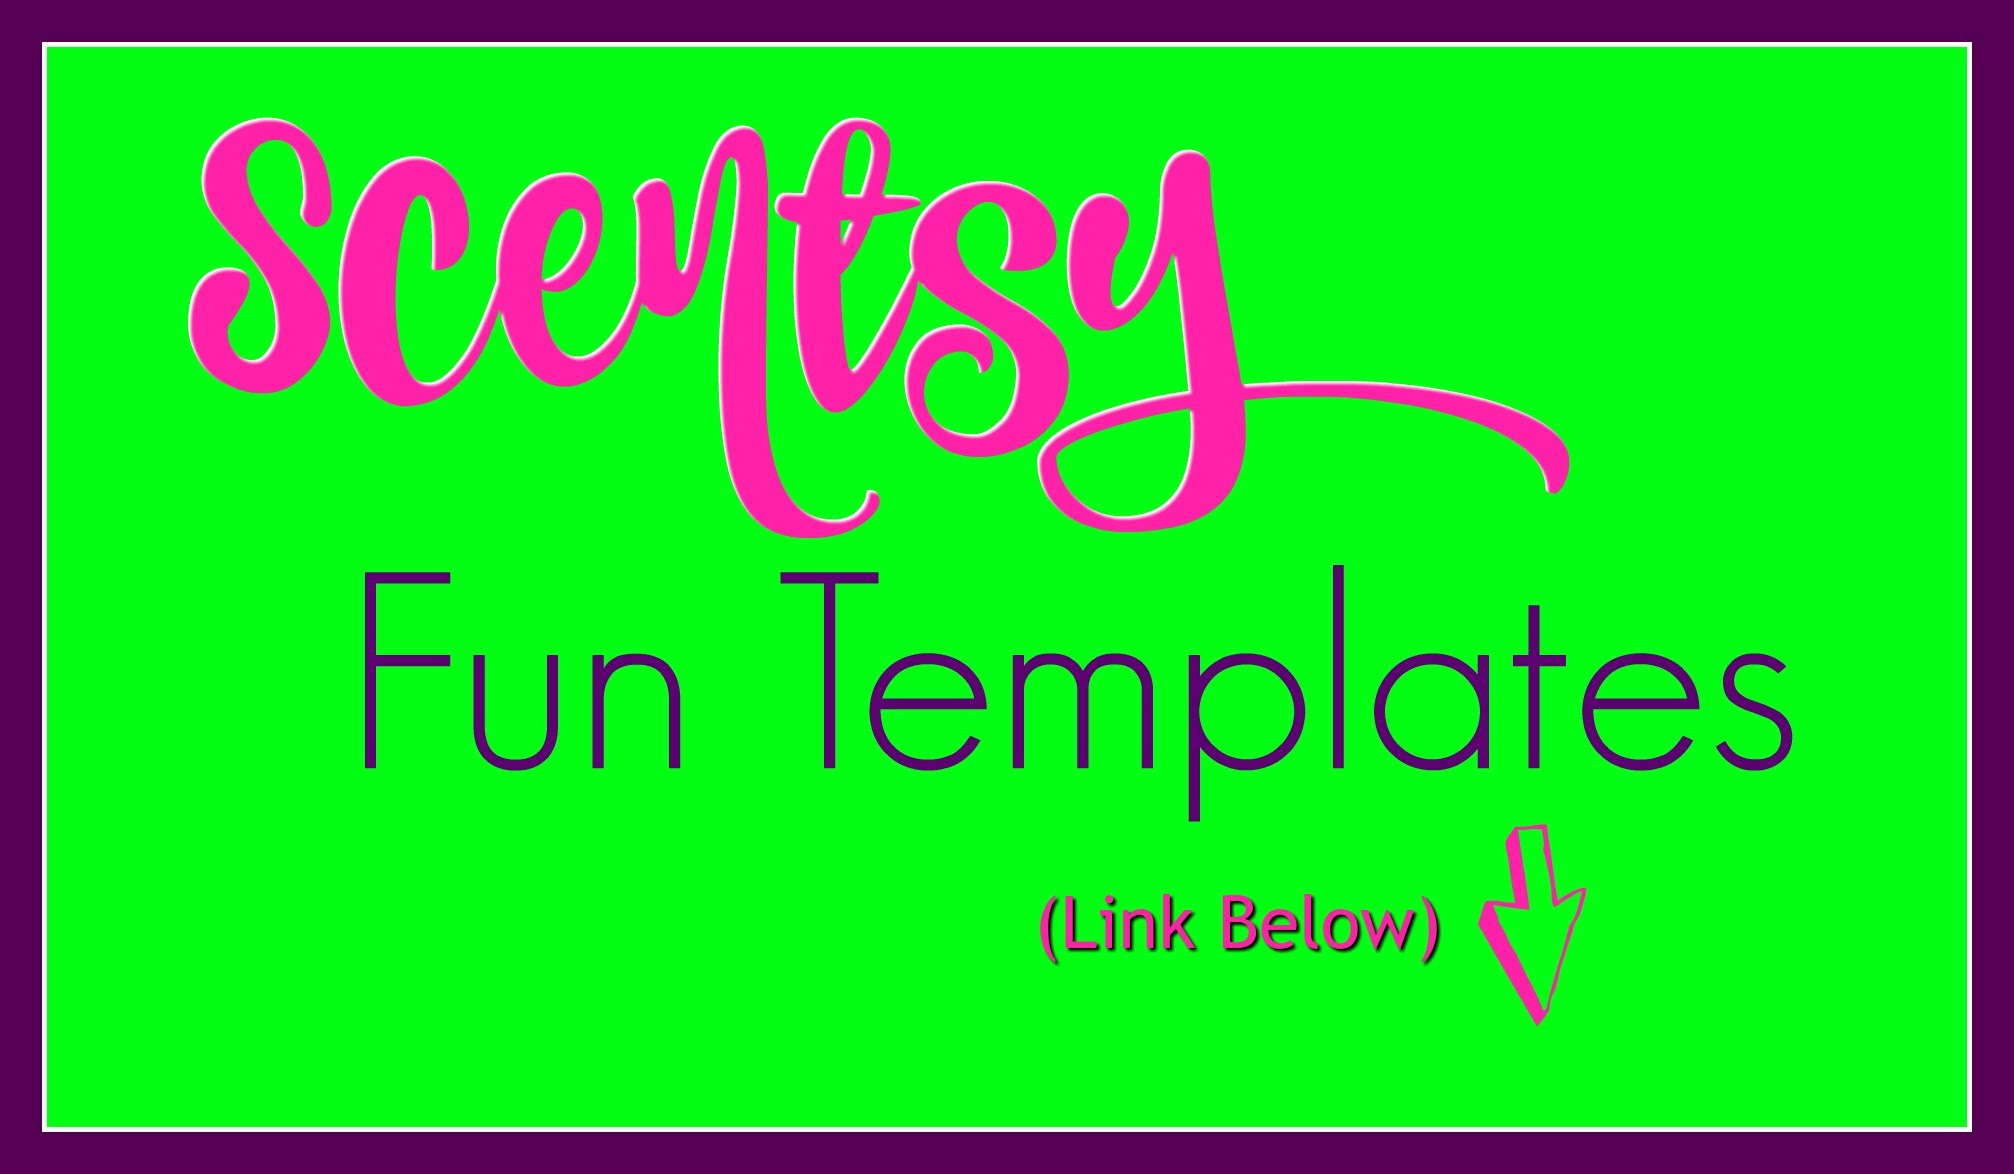 Printable Scentsy Business Cards | Download Them Or Print - Free Printable Scentsy Business Cards